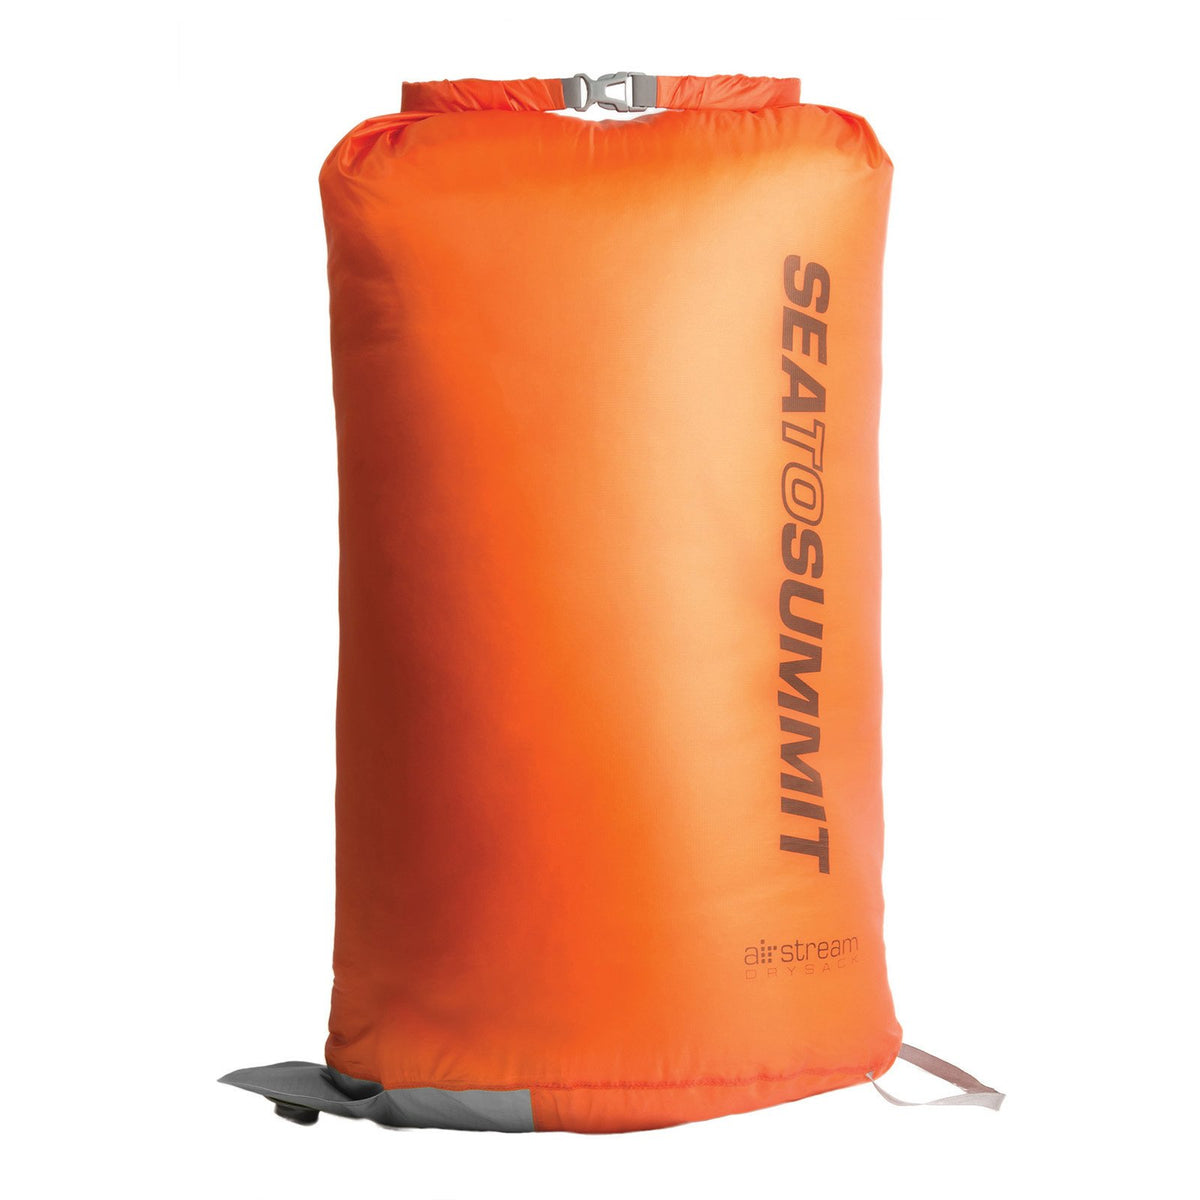 Sea to Summit Air Stream Pump Sack 20l, front view in orange colour